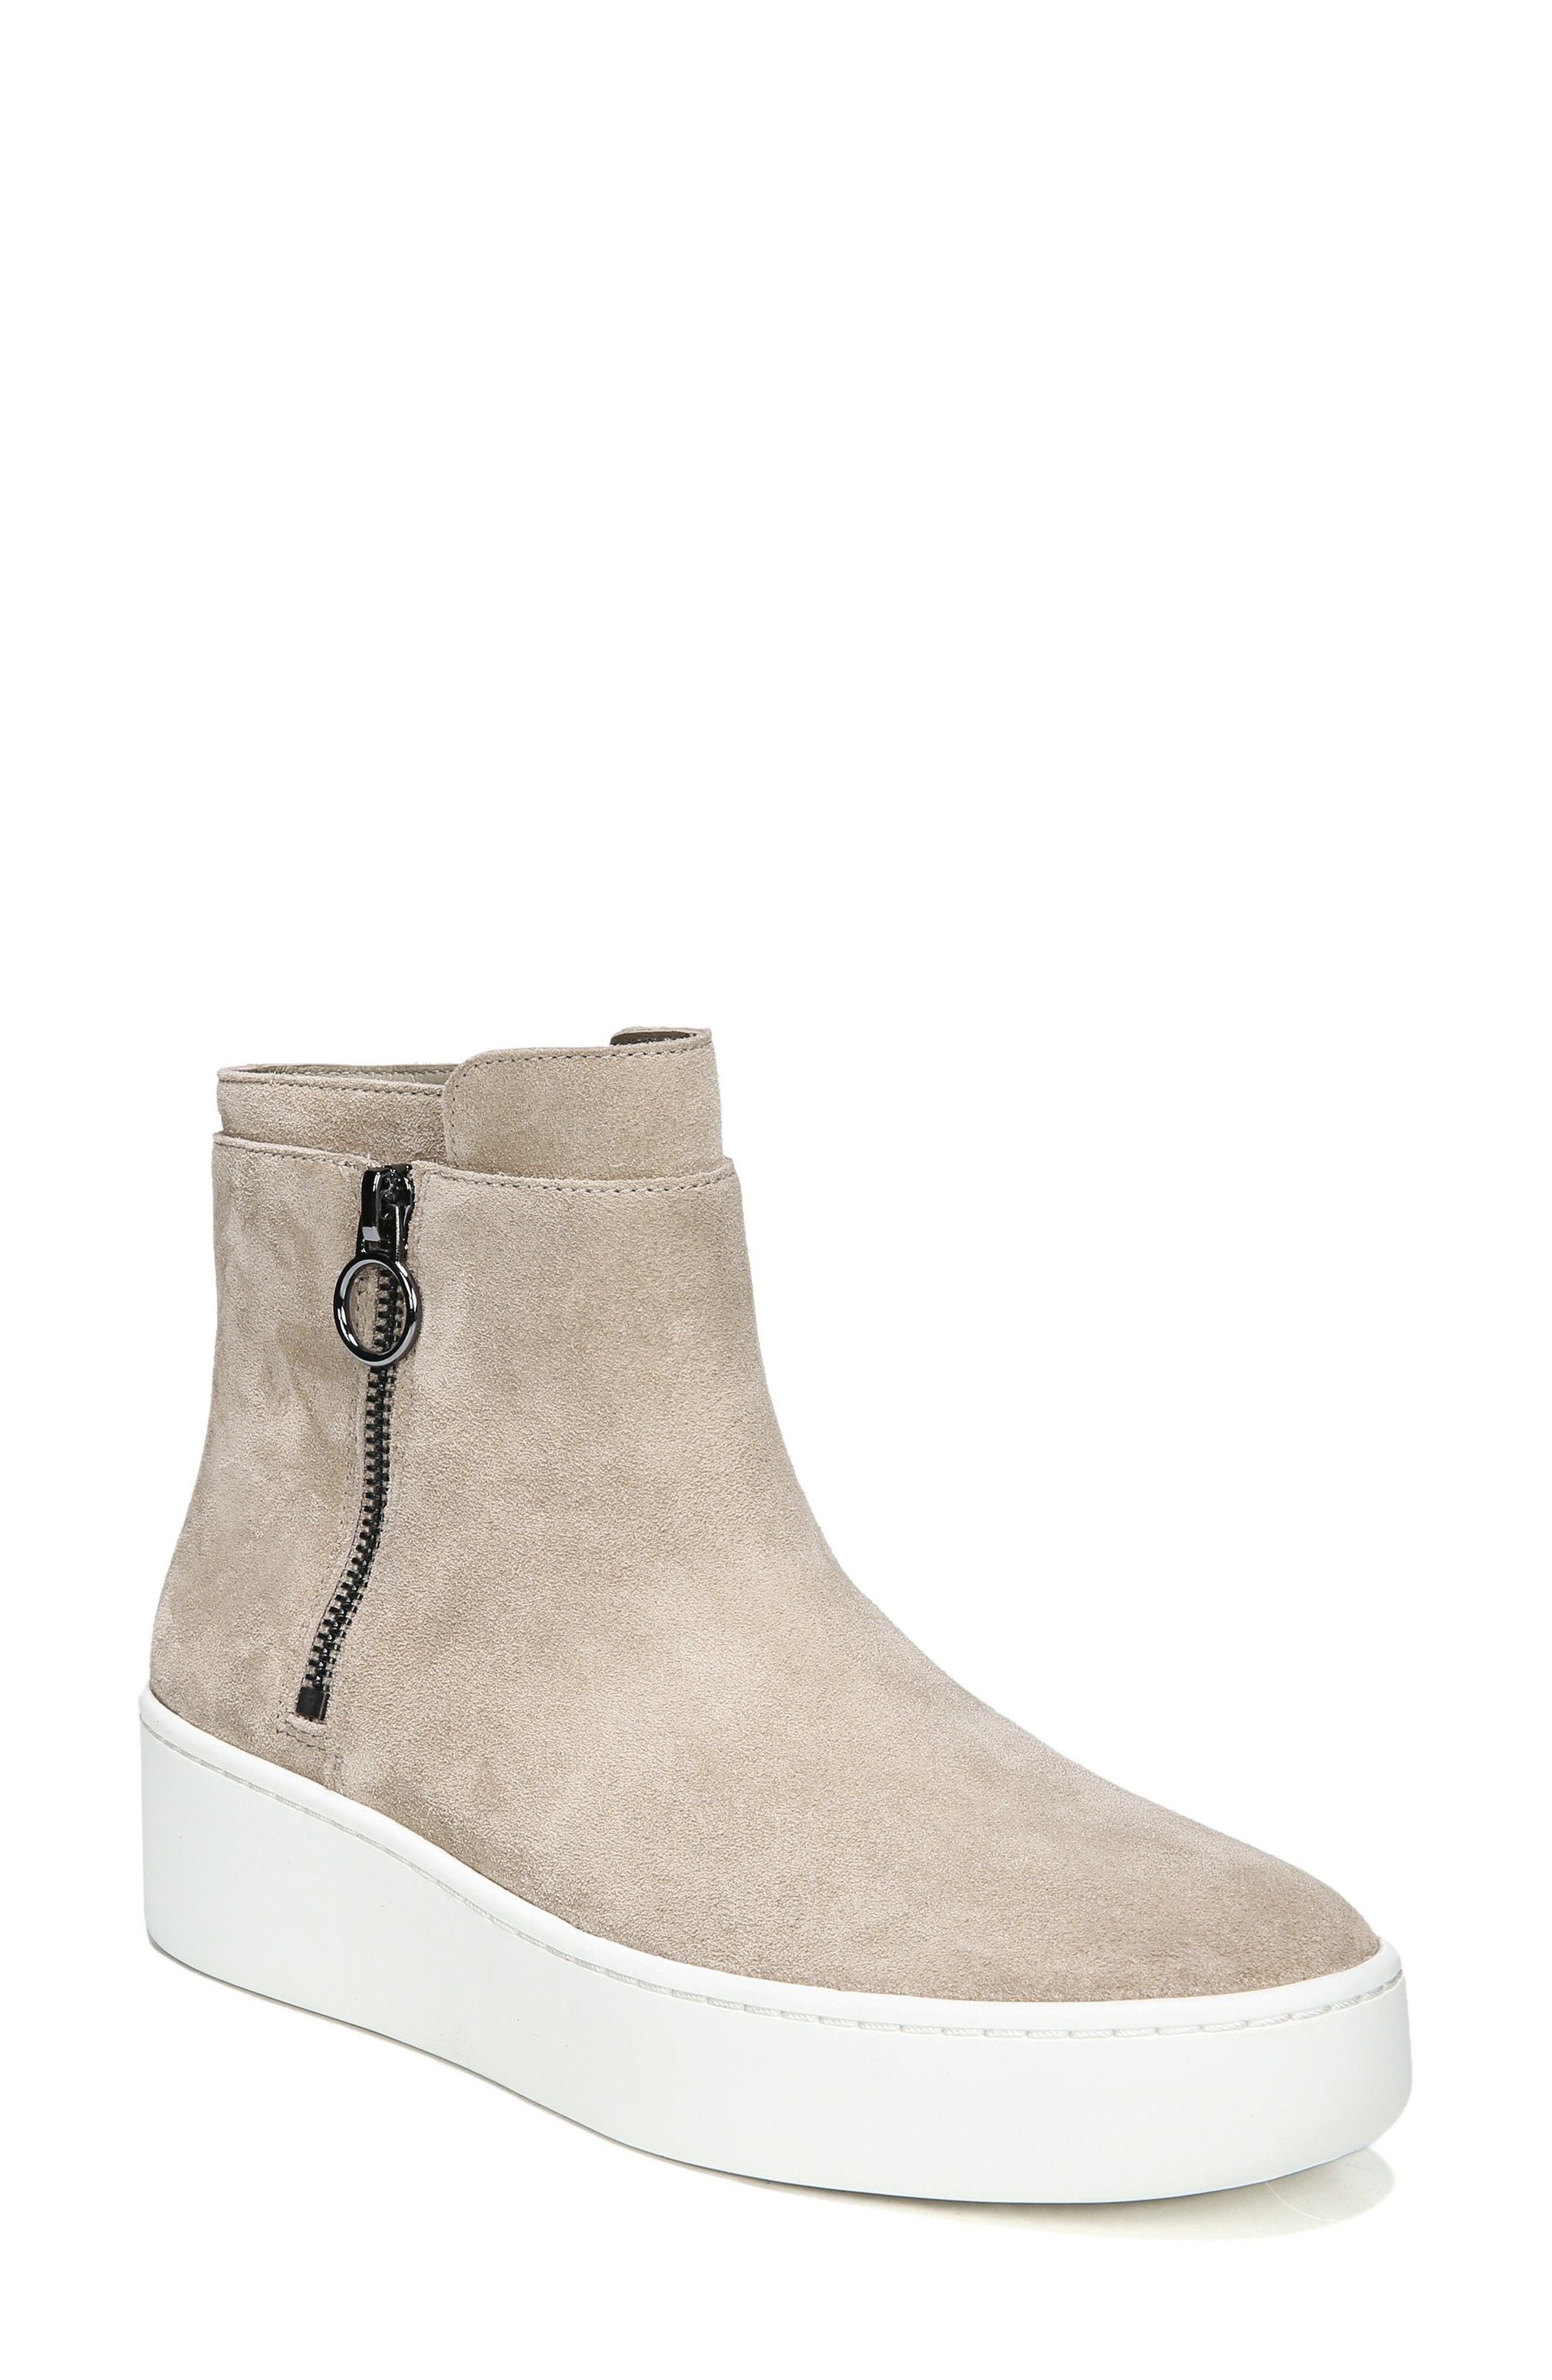 Alternate Image 1 Selected - Via Spiga Easton High Top Sneaker (Women)